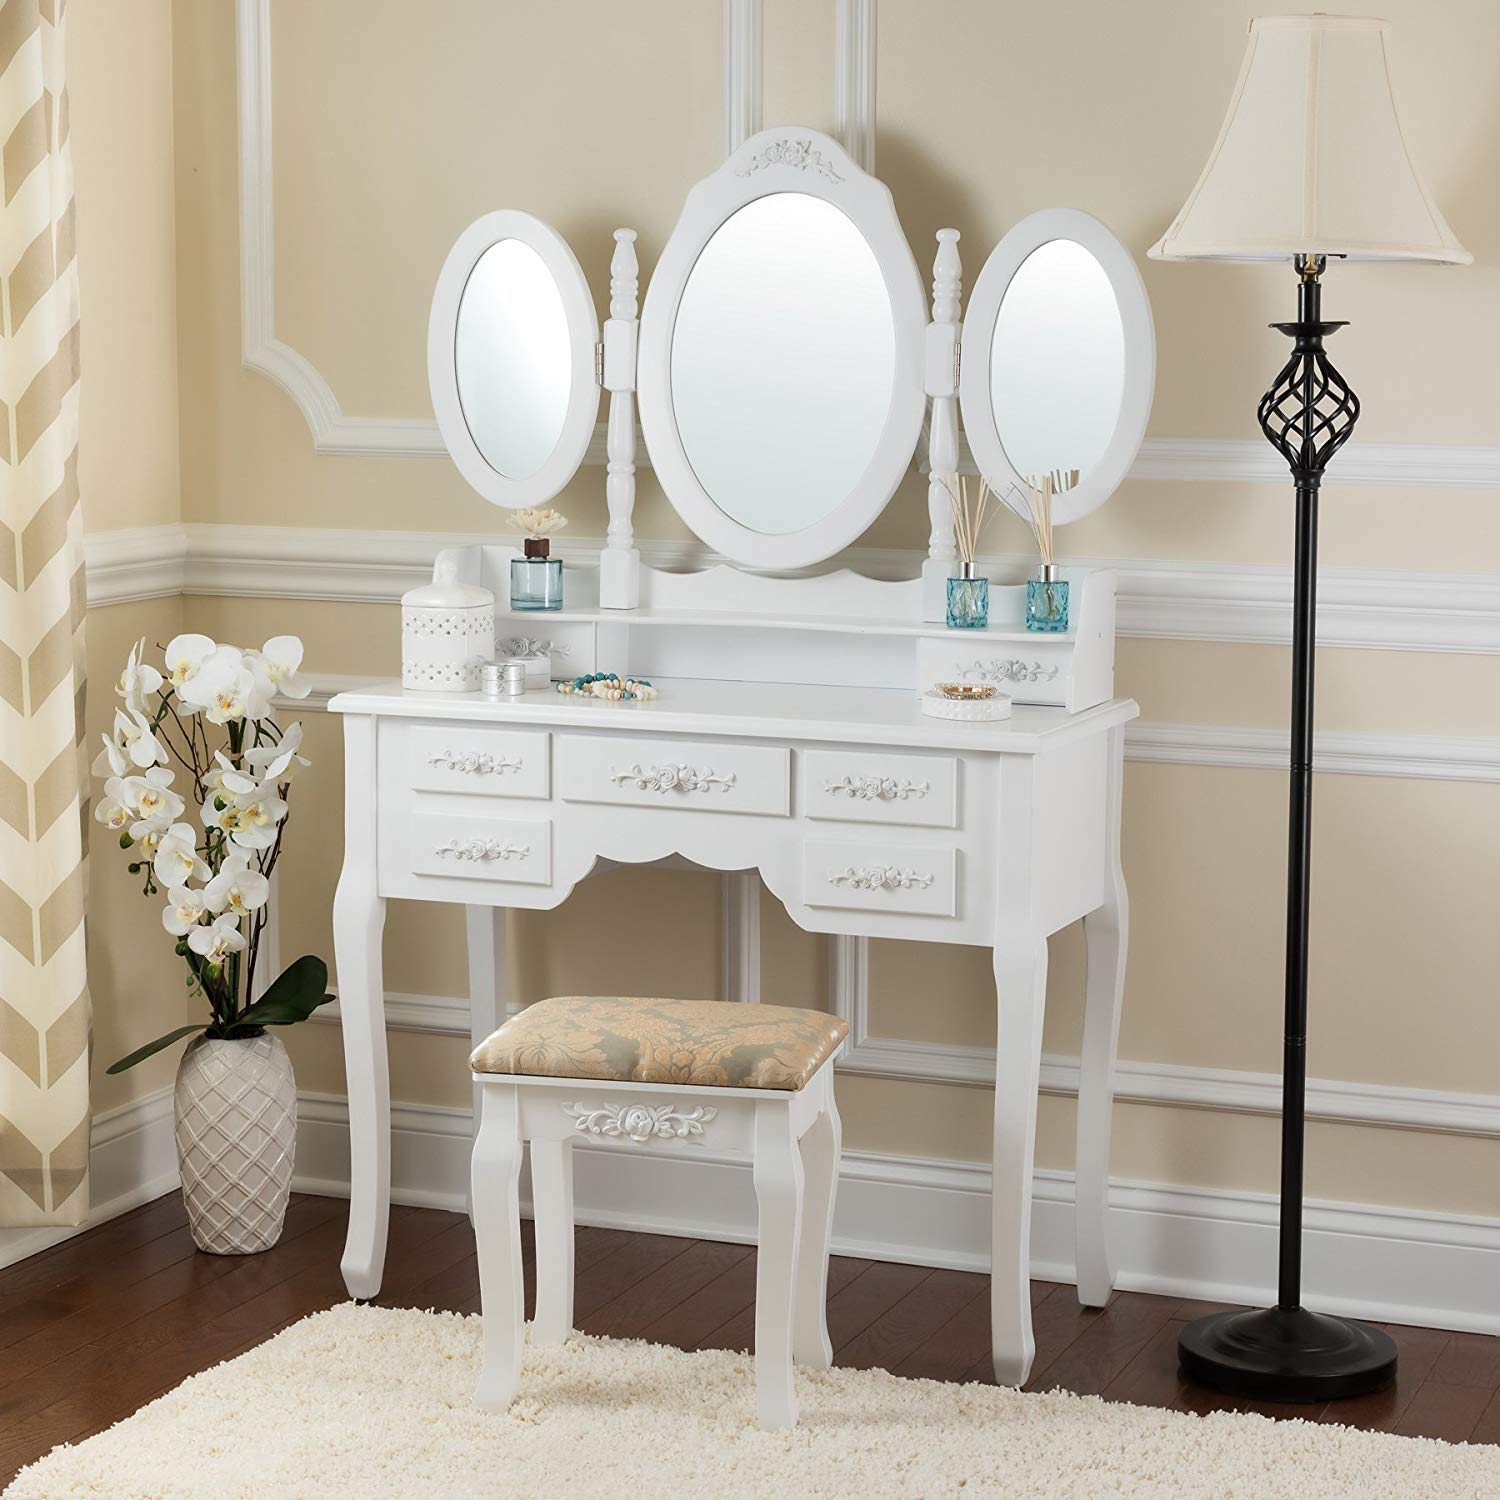 White Makeup Vanity Set, MakeupDesk with Tri folding Mirrors and 7 Drawers with Mirror